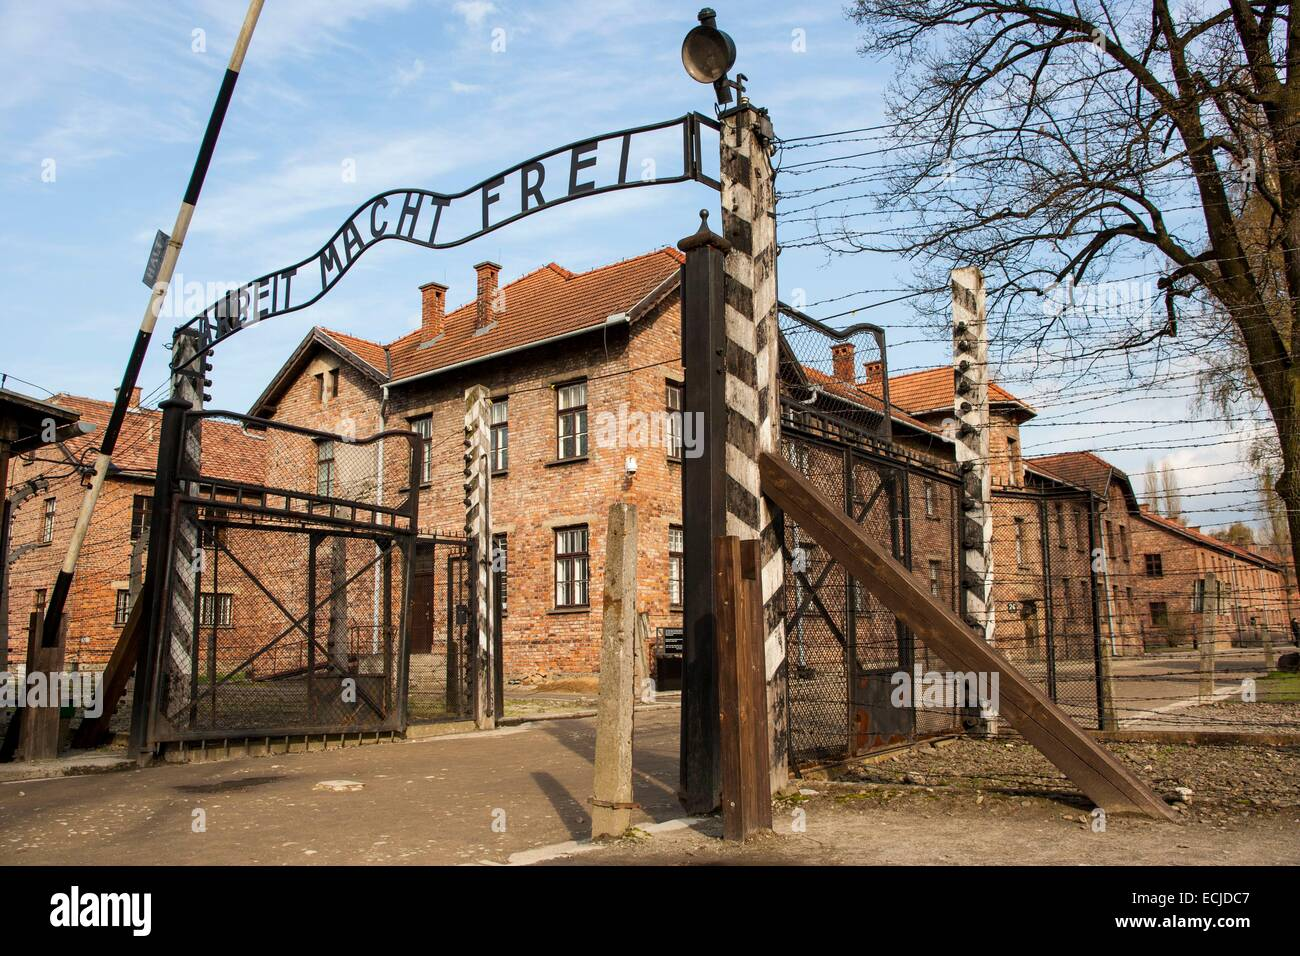 a history of auschwitz nazi concentration camp in poland The exact address and equipment arrays of the key ibm offices and customer sites in nazi-occupied poland have been discovered but no one also known as monowitz concentration camp auschwitz' setkiewicz explains history of auschwitz auschwitz ii.